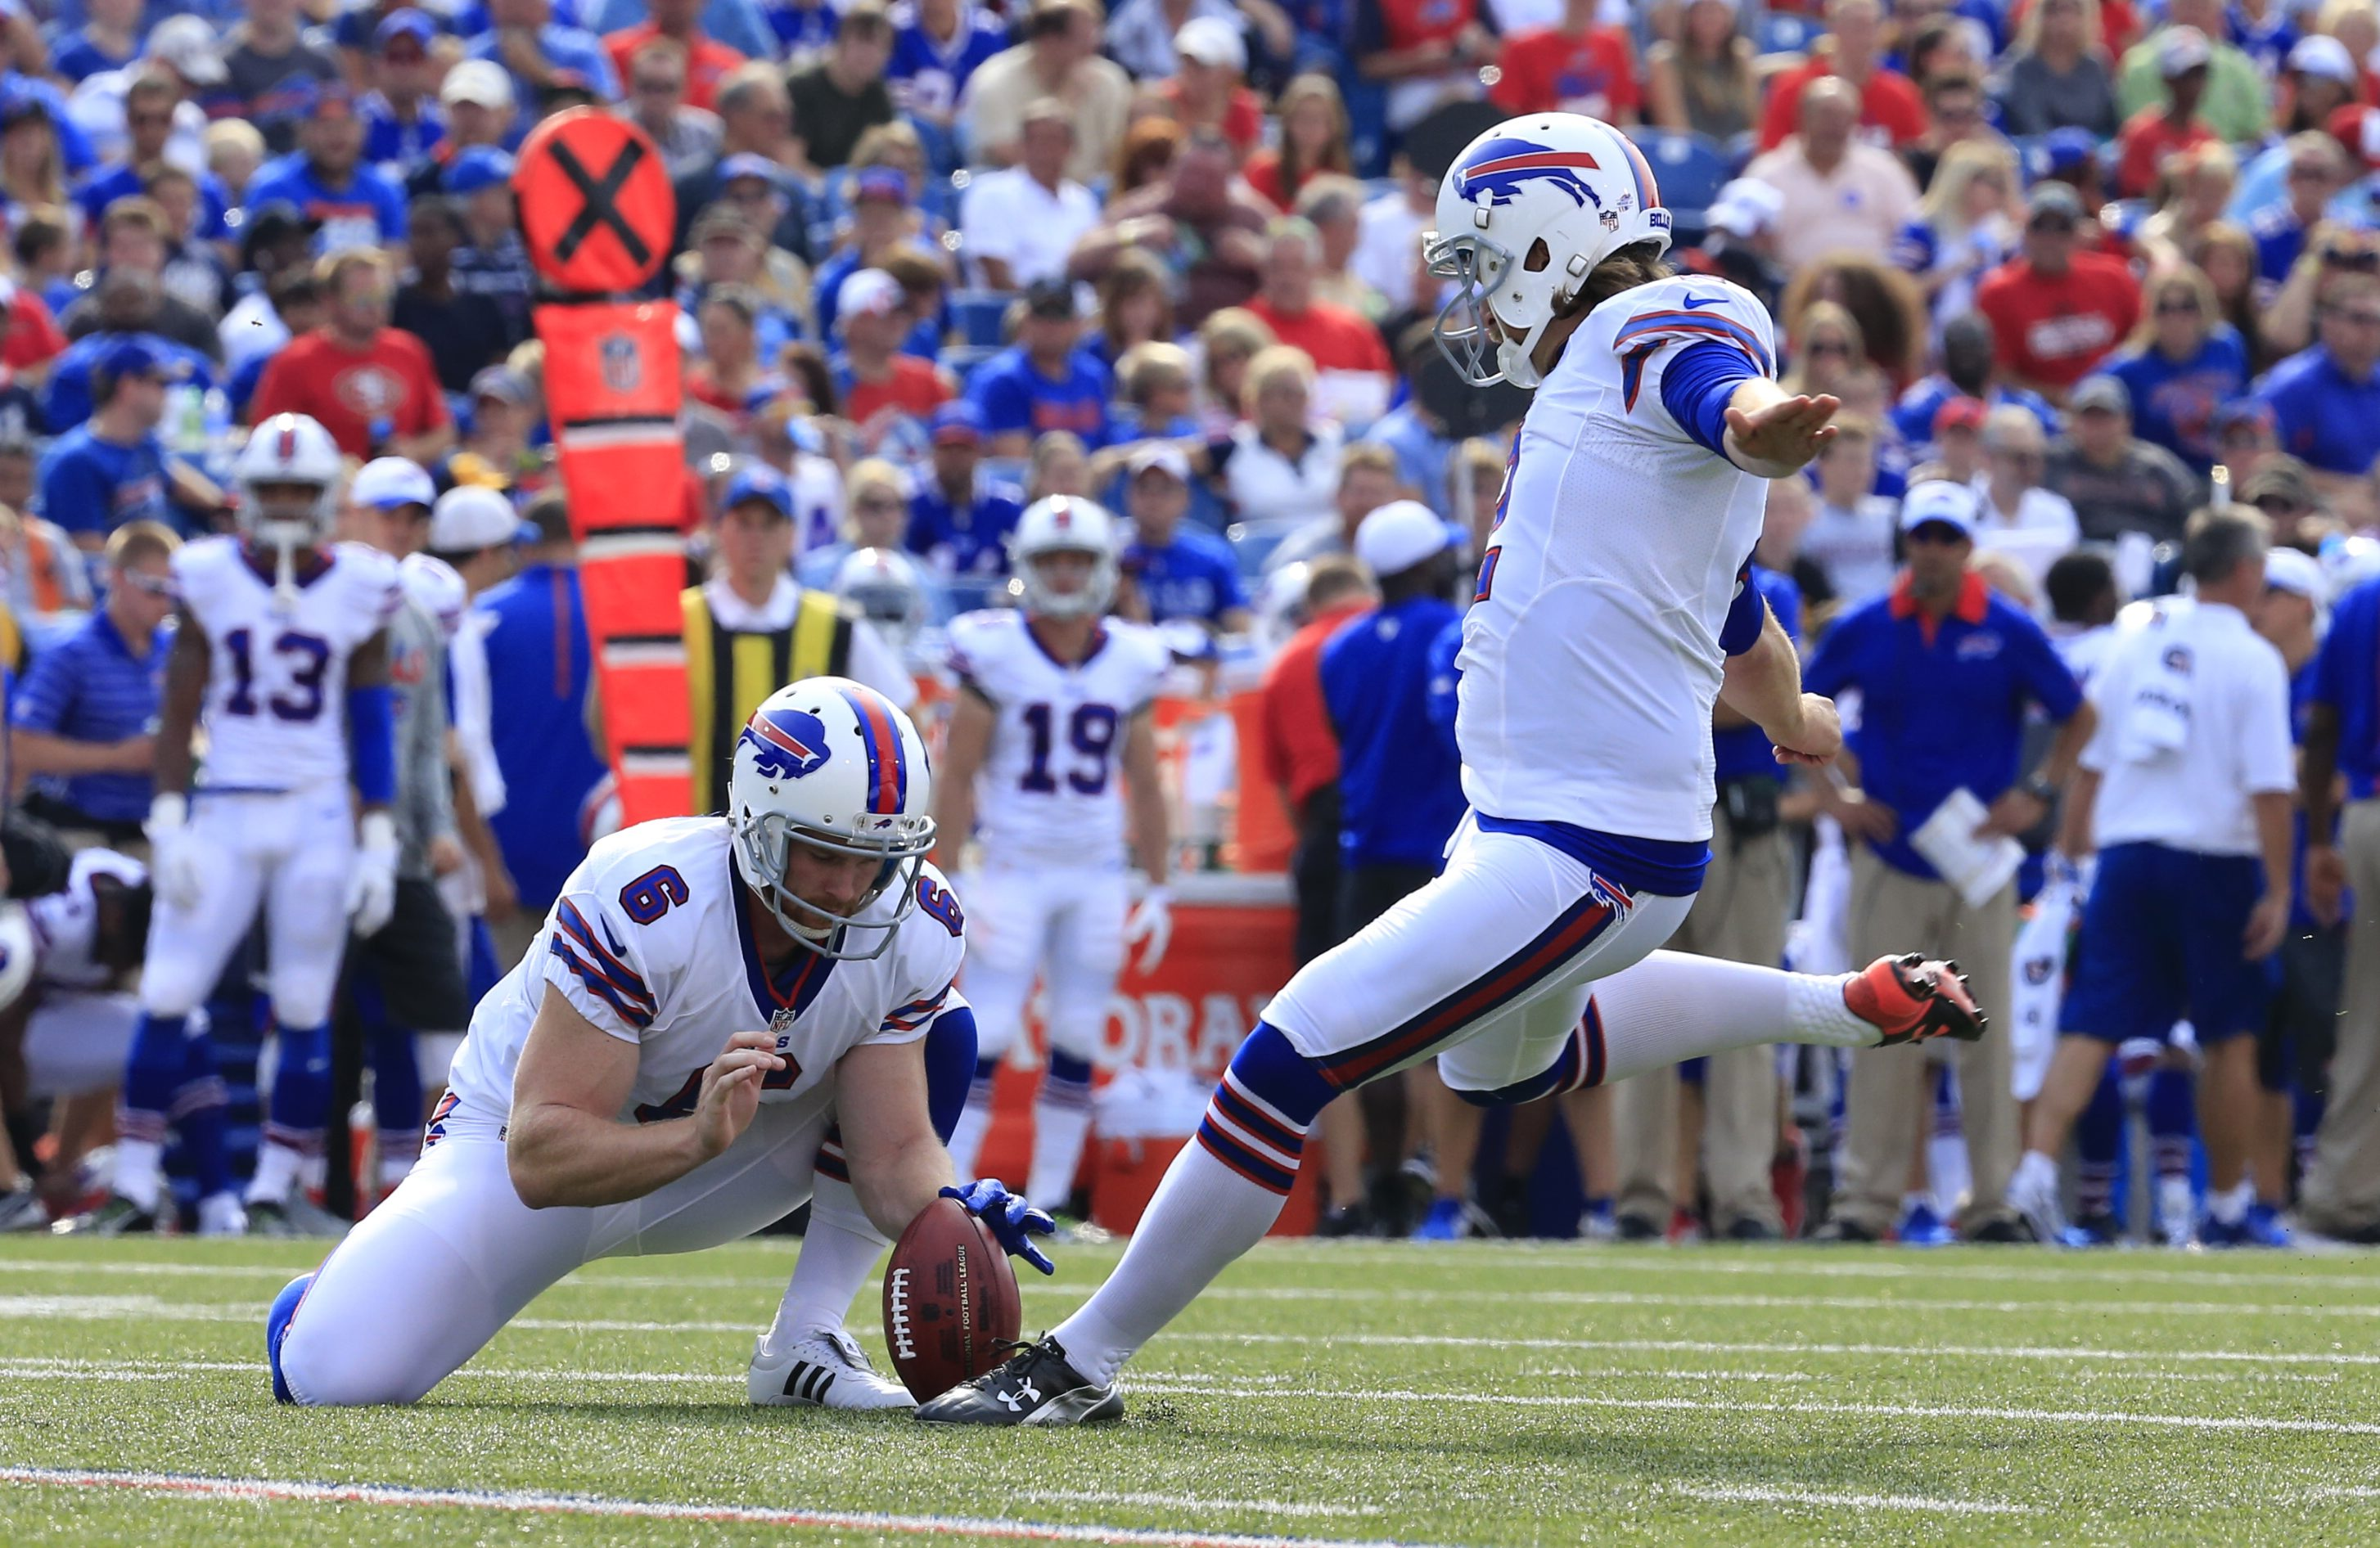 Dan Carpenter has missed two field goals and an extra point so far in the preseason.